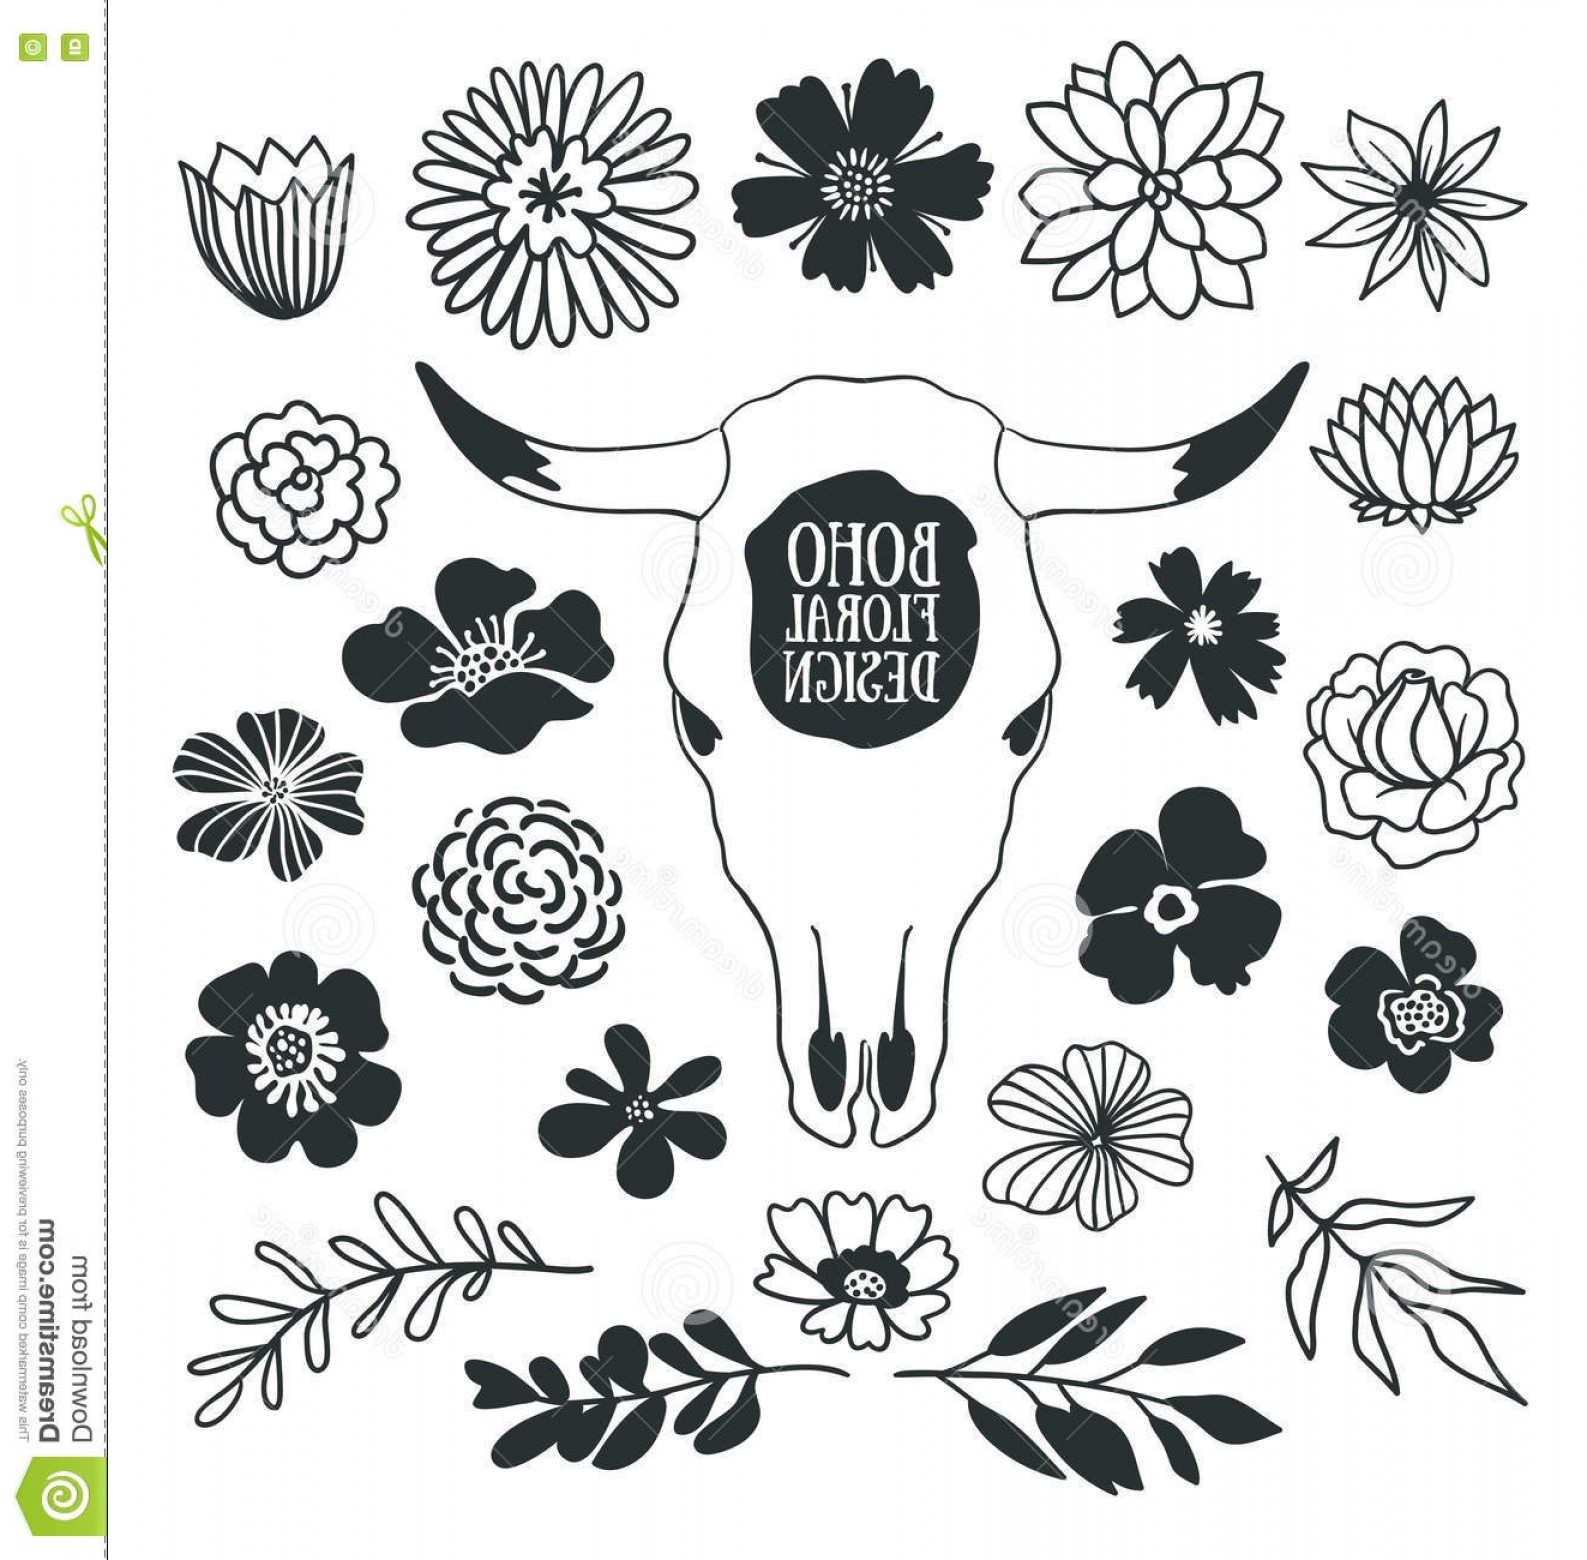 Bohemian Flowers Vector: Stock Illustration Boho Black Decorative Plants Flowers Collection Cow Skull Hand Drawn Vector Design Elements Isolated White Image